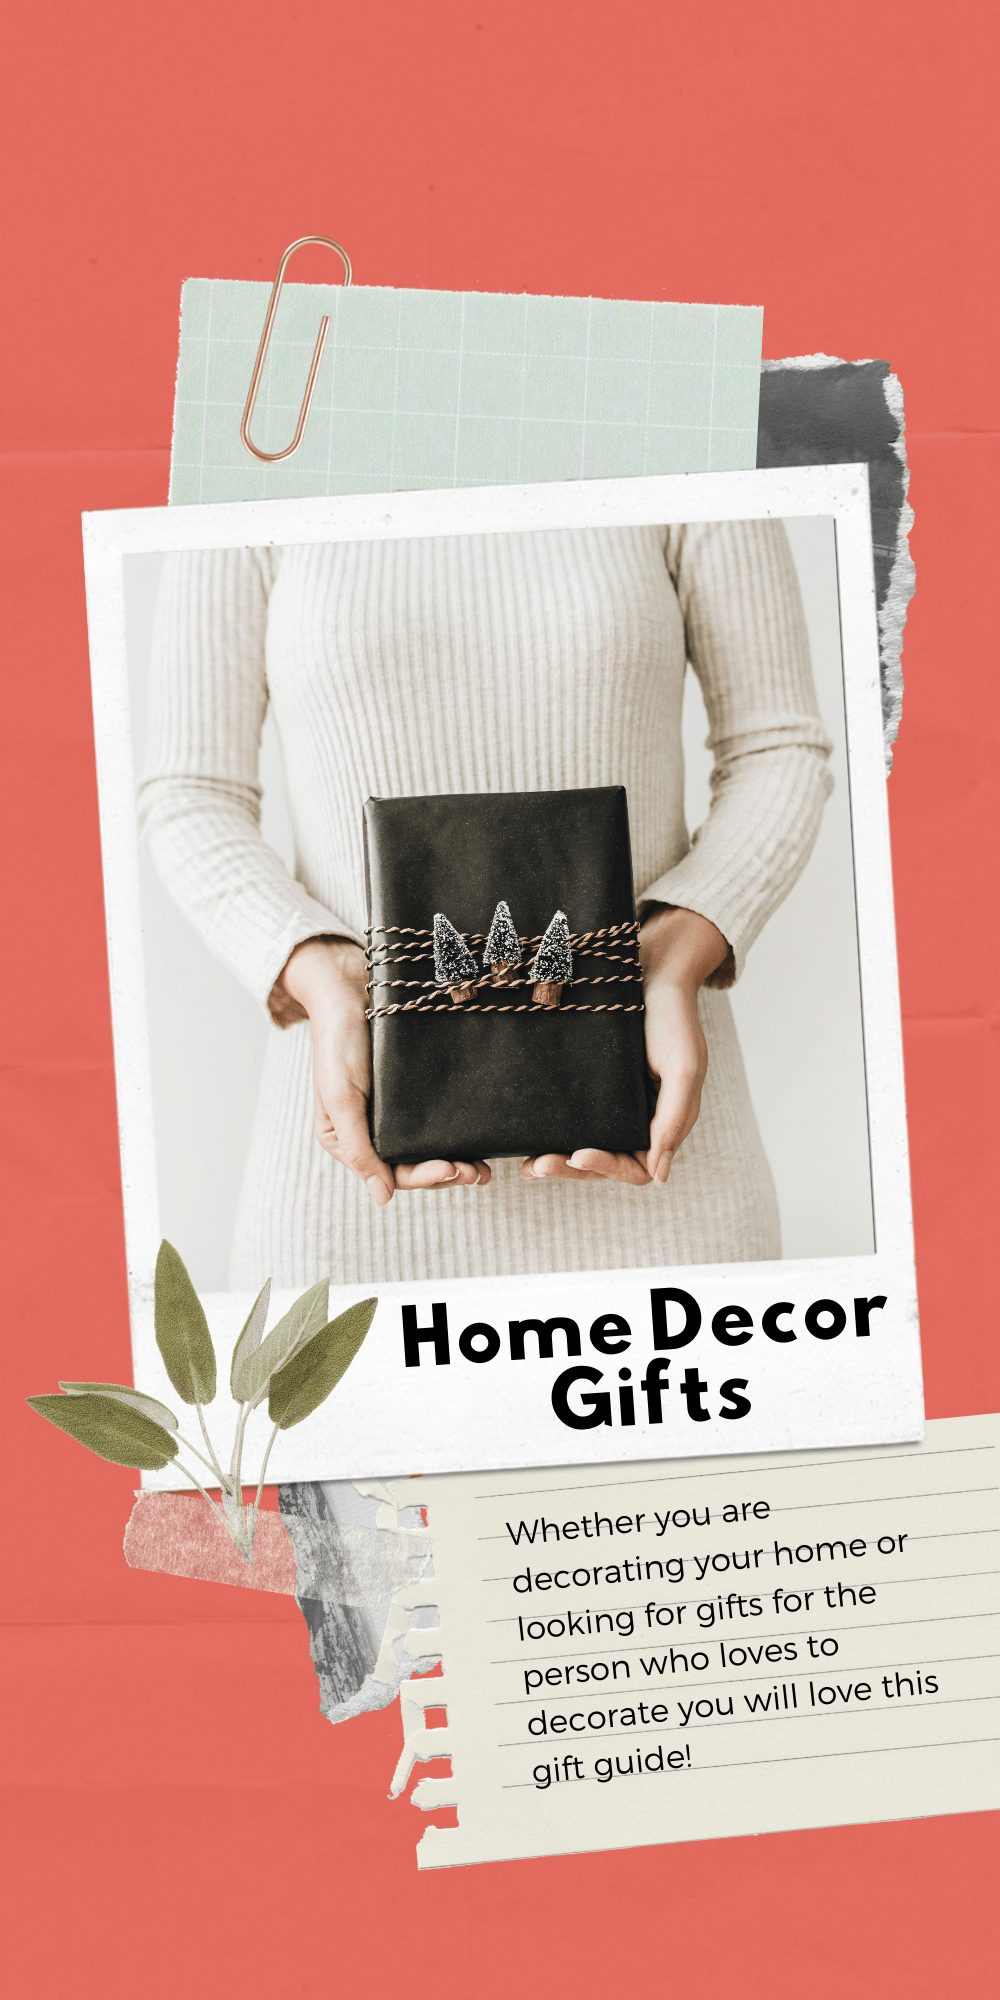 Home Decor Gifts She Will Love Getting & Decorating With!